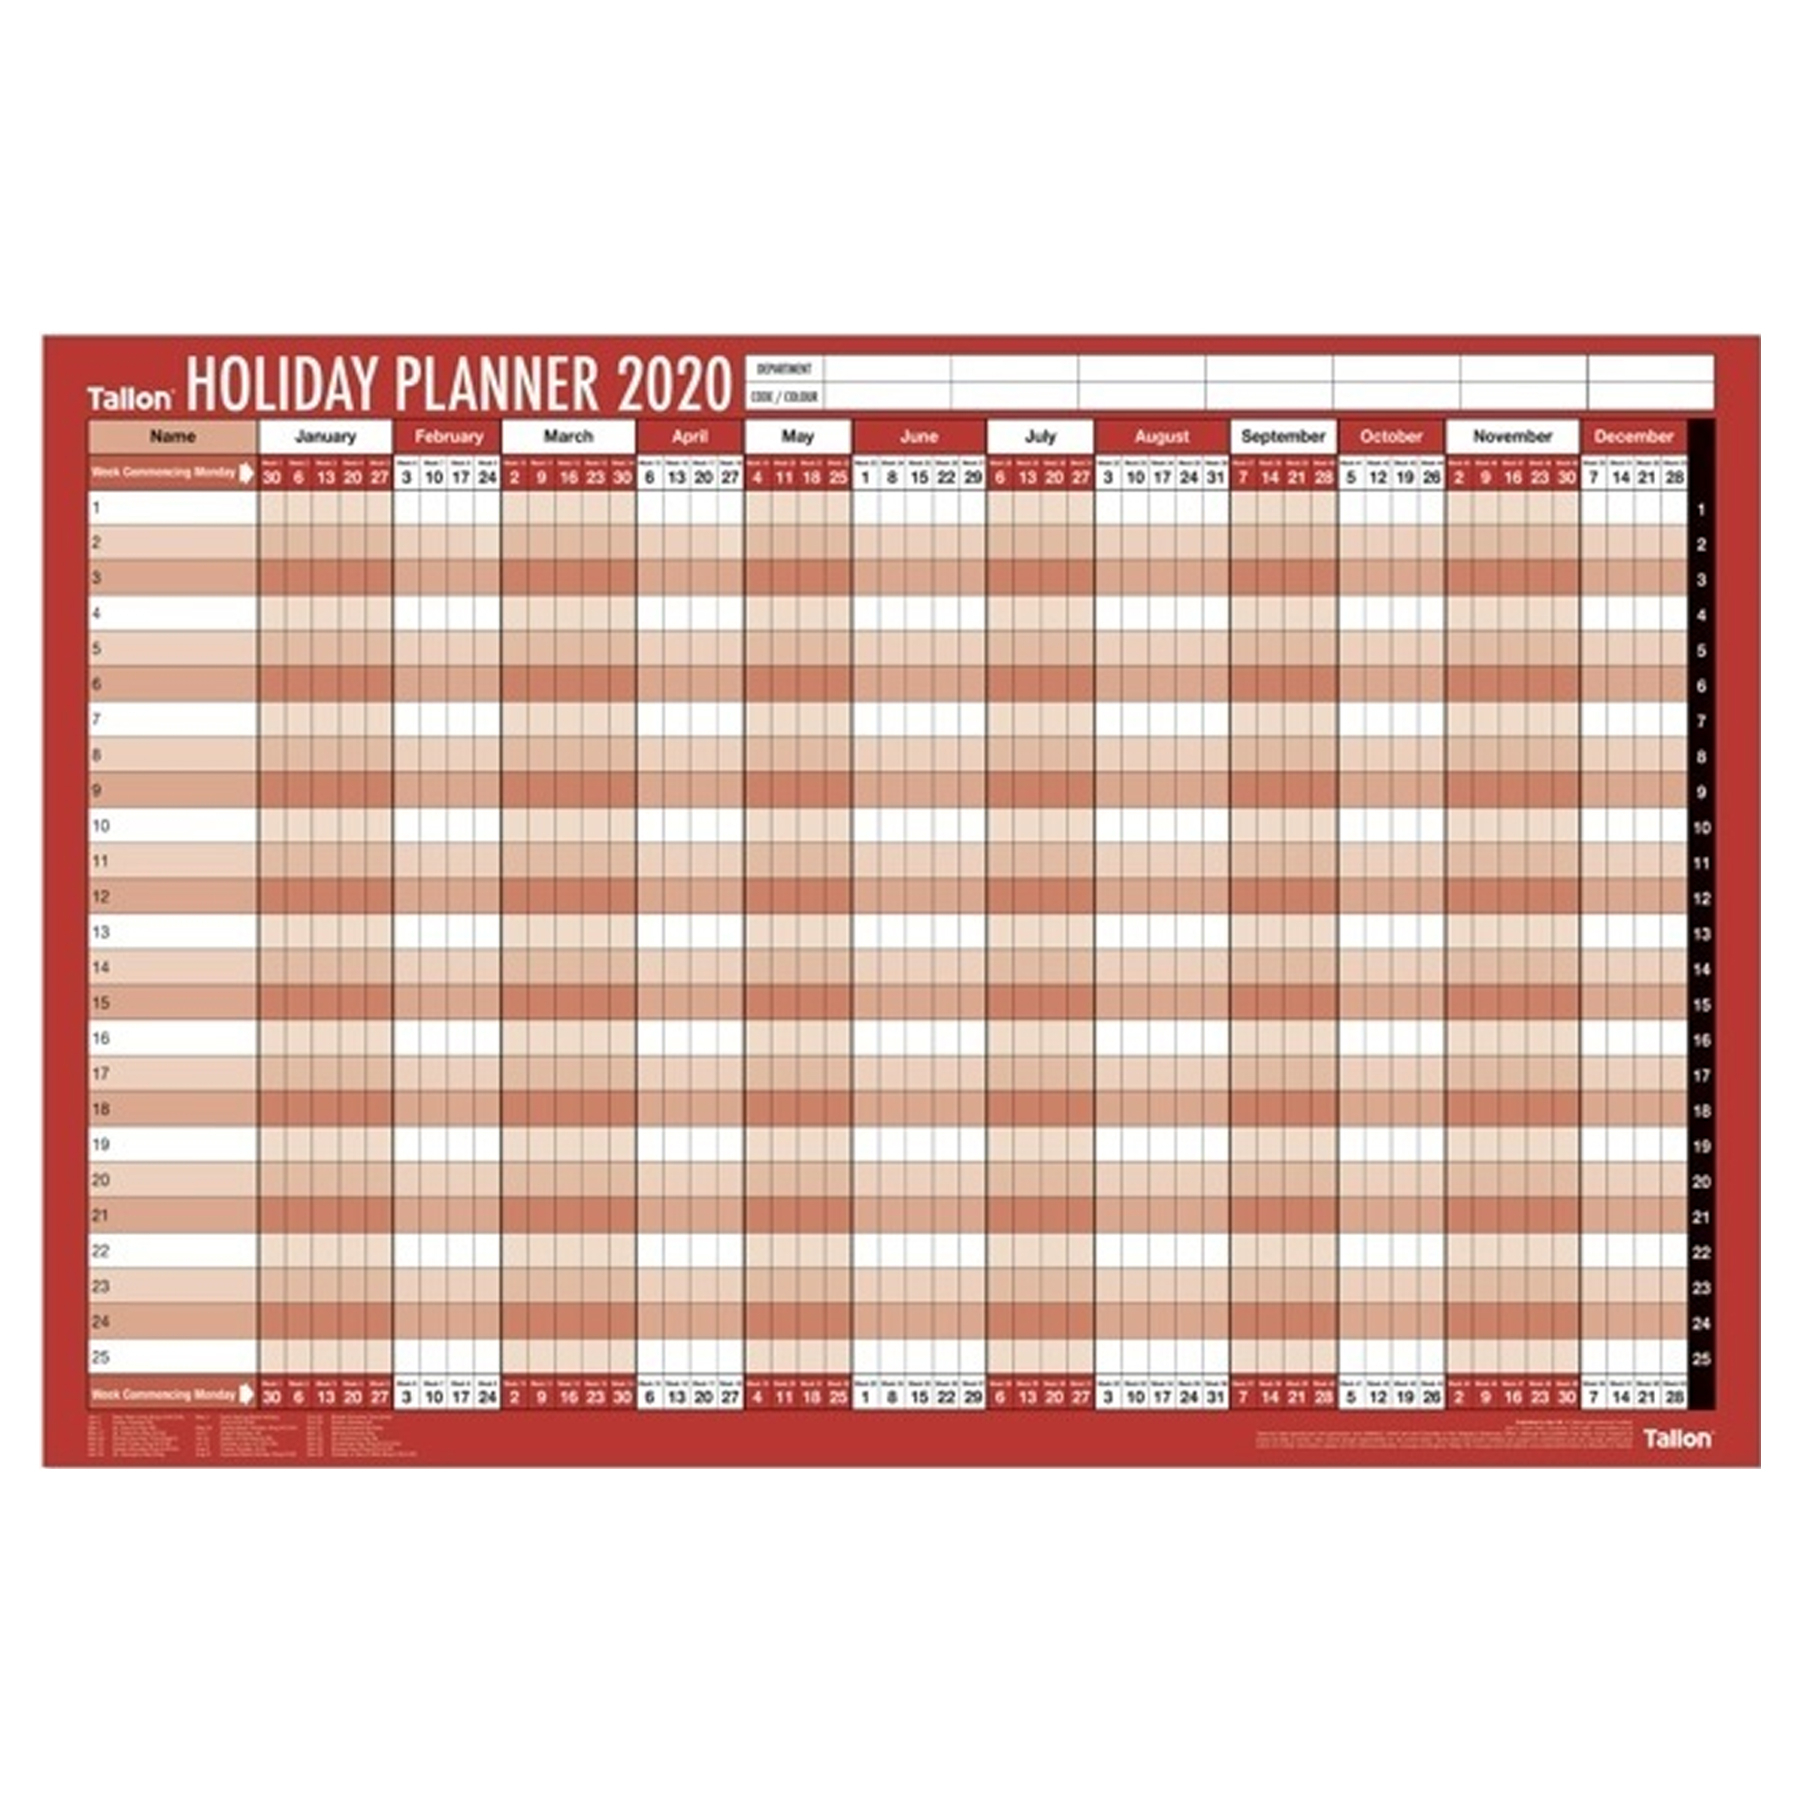 2020 Large Staff Holiday Wall Planner Calendar 88Cm X 58Cm throughout Holiday Stickers For Calendars